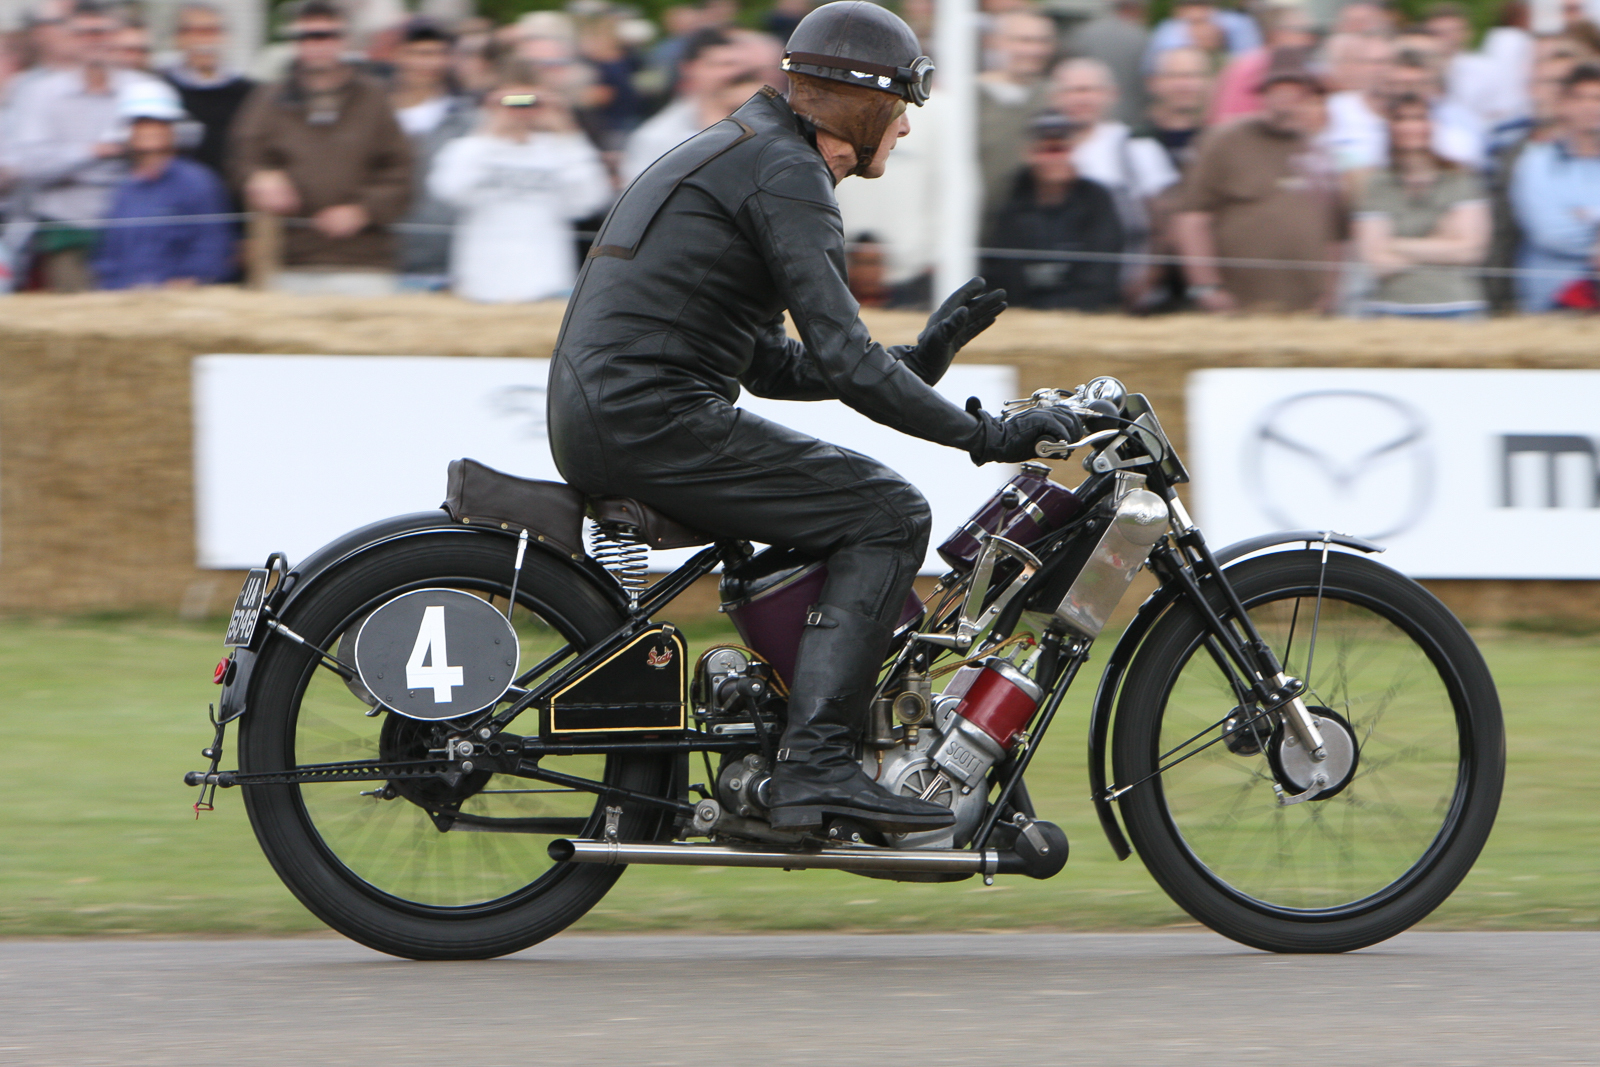 20080711 - Goodwood Festival of Speed -080711 -014